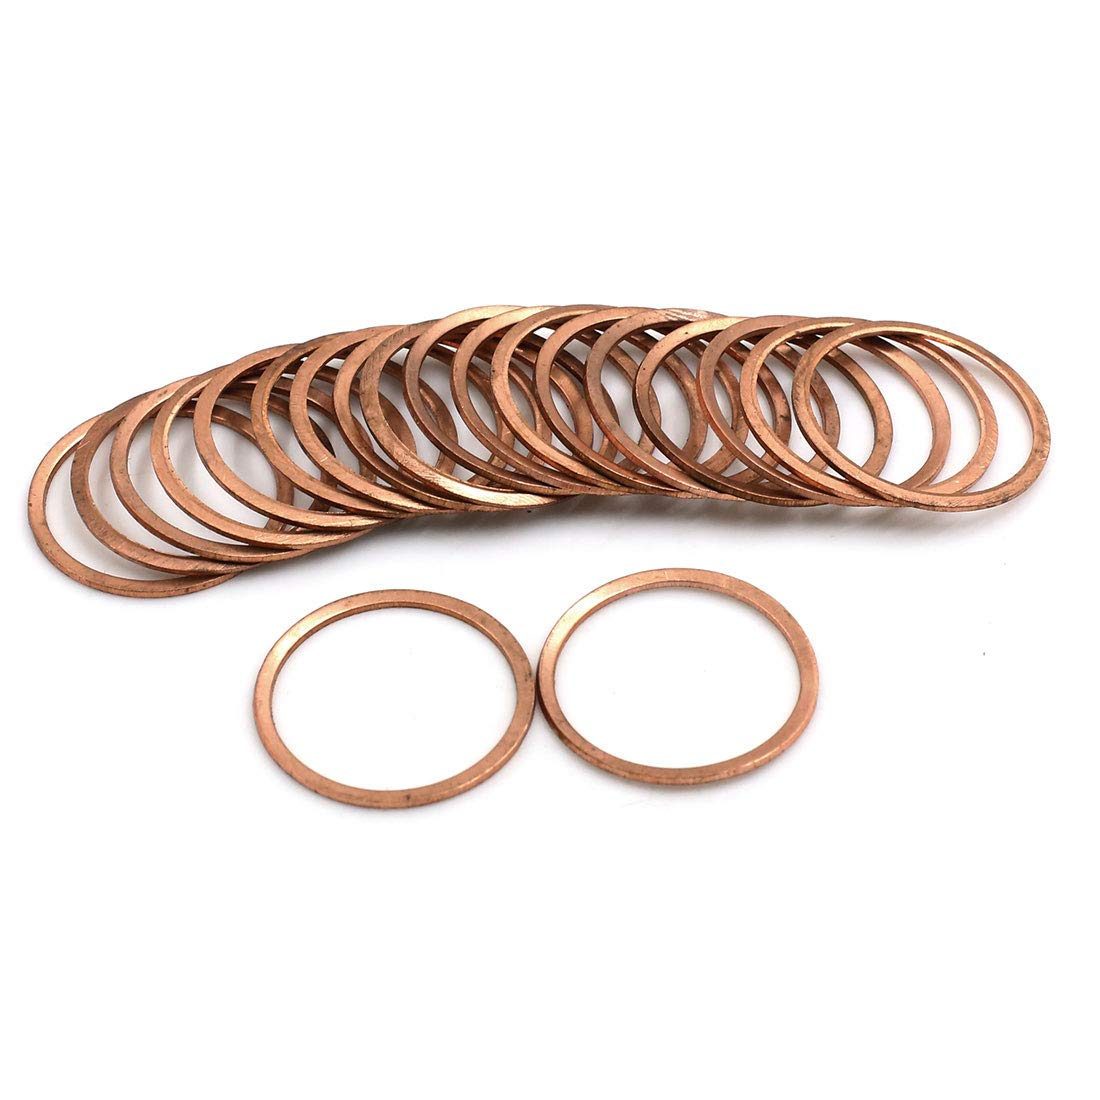 X AUTOHAUX 20pcs 26mm Inner Dia Copper Washers Flat Sealing Gaskets Ring for Car by X AUTOHAUX (Image #2)